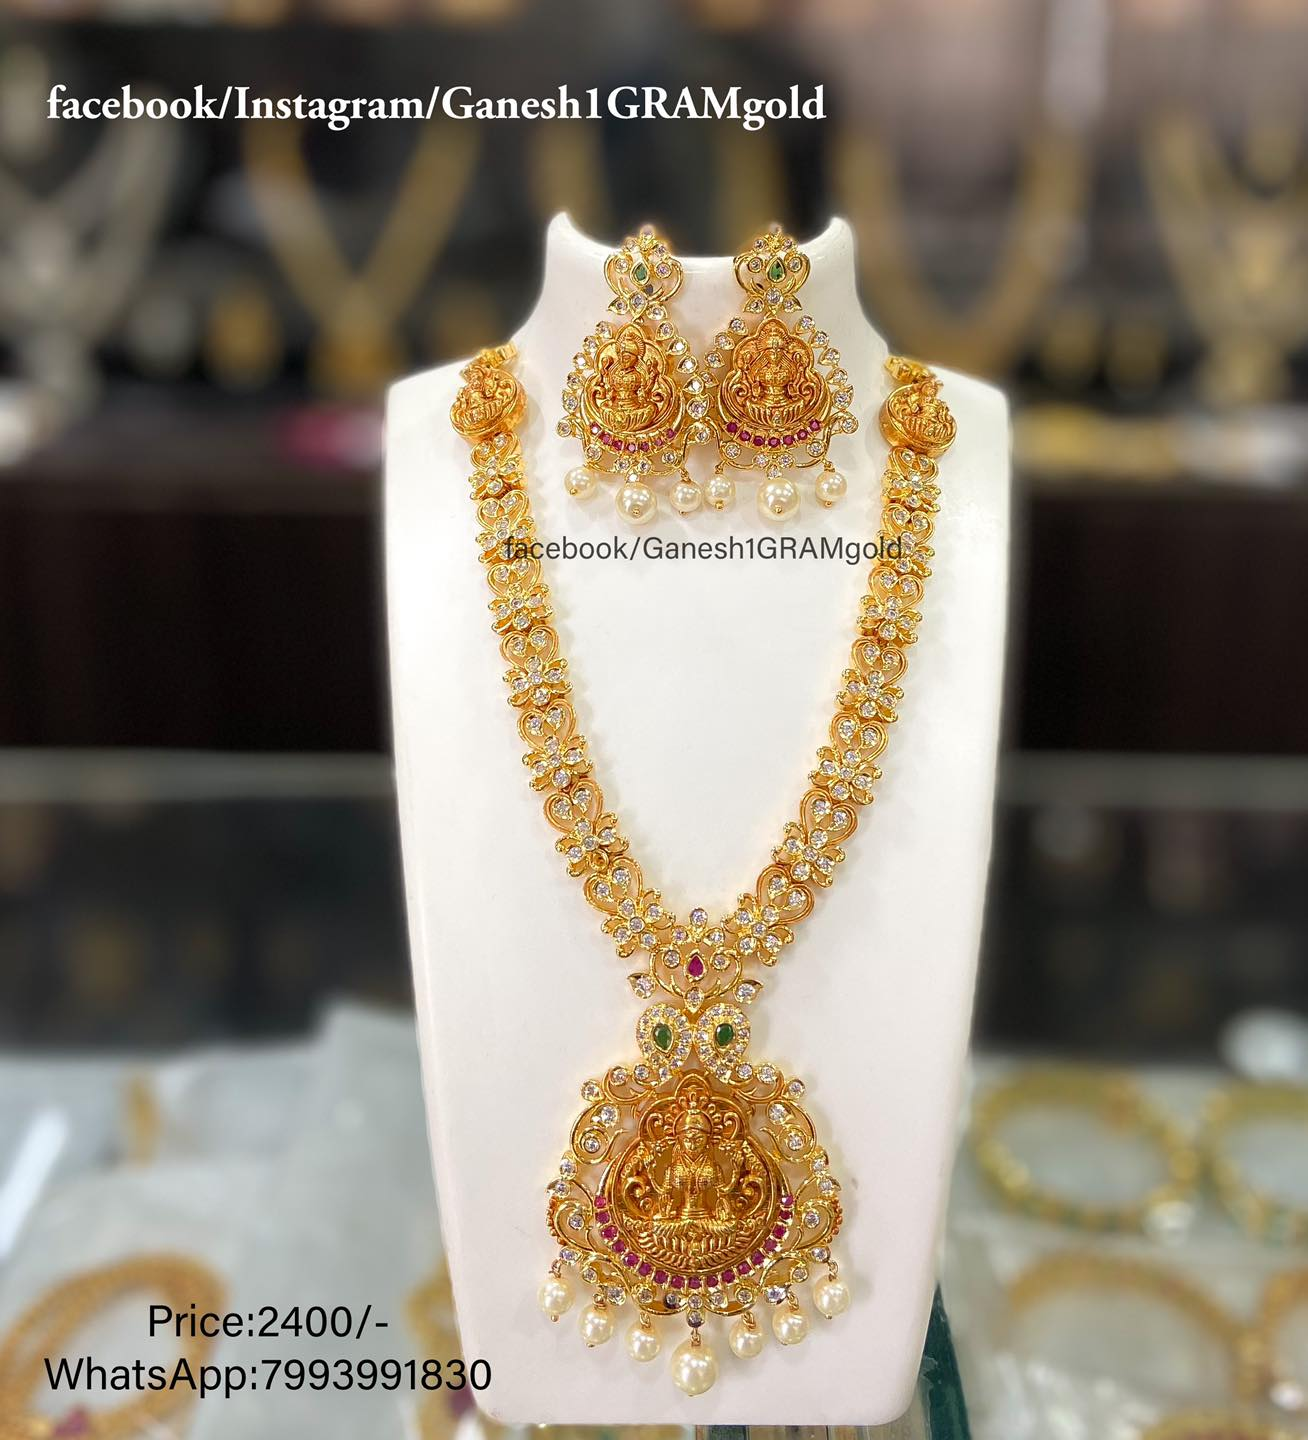 One gram gold Cz stones necklace..... Price:2400/- Cash on delivery (COD) available 1gm gold jewellery online 1 gram gold jewellery 1 gram gold jewellery wholesale begum bazar